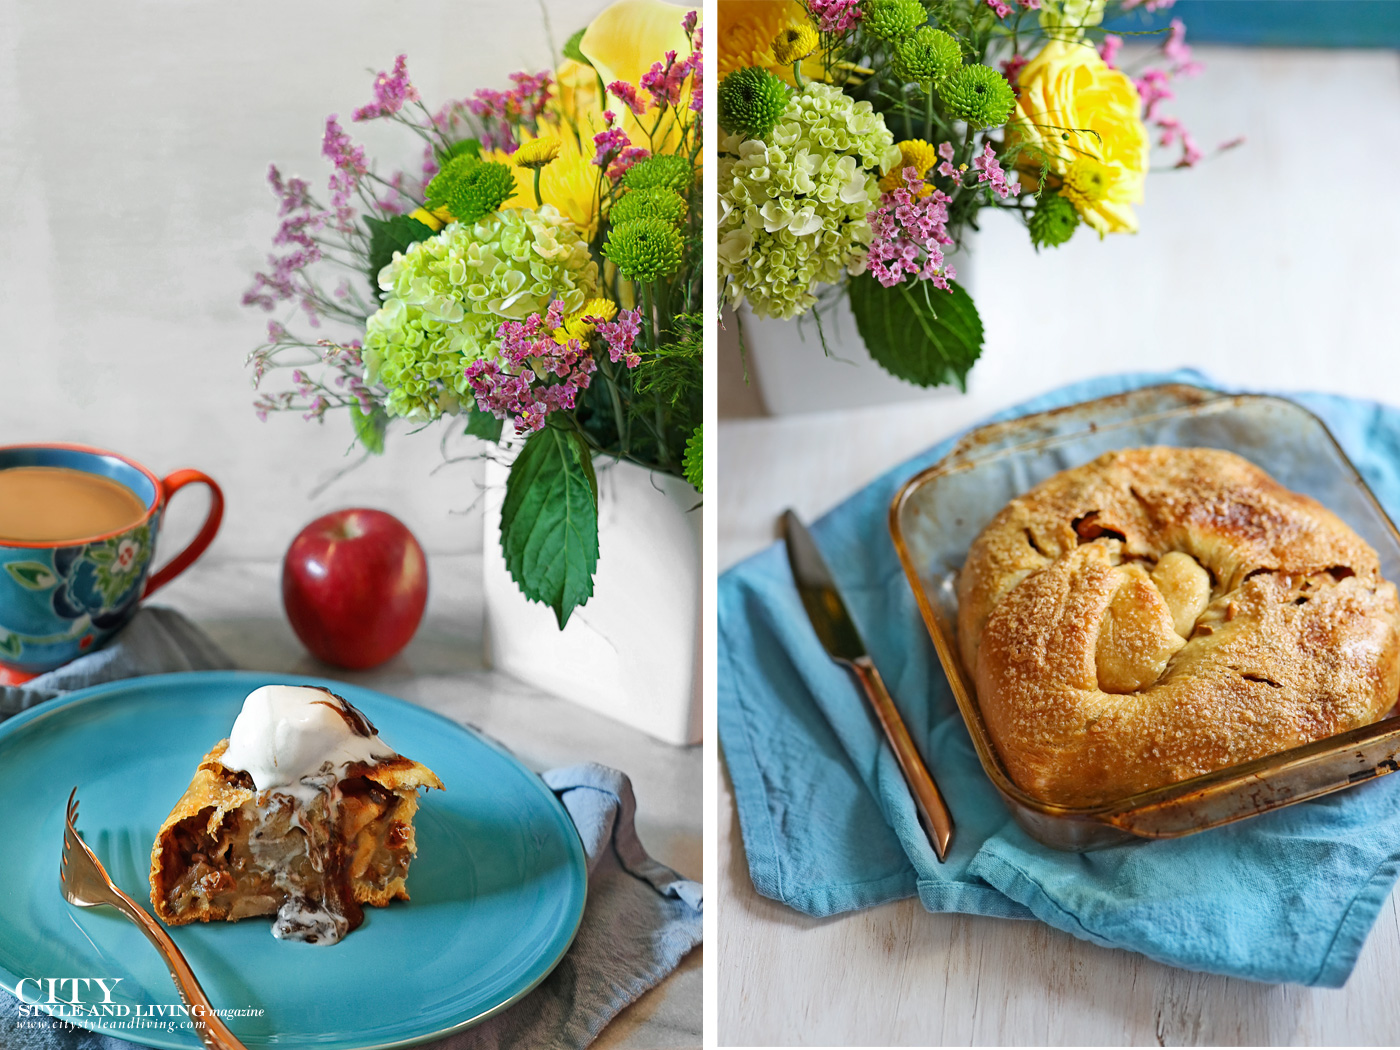 City Style and Living Magazine Winter 2020 Apple Strudel and Whisky Ice Cream